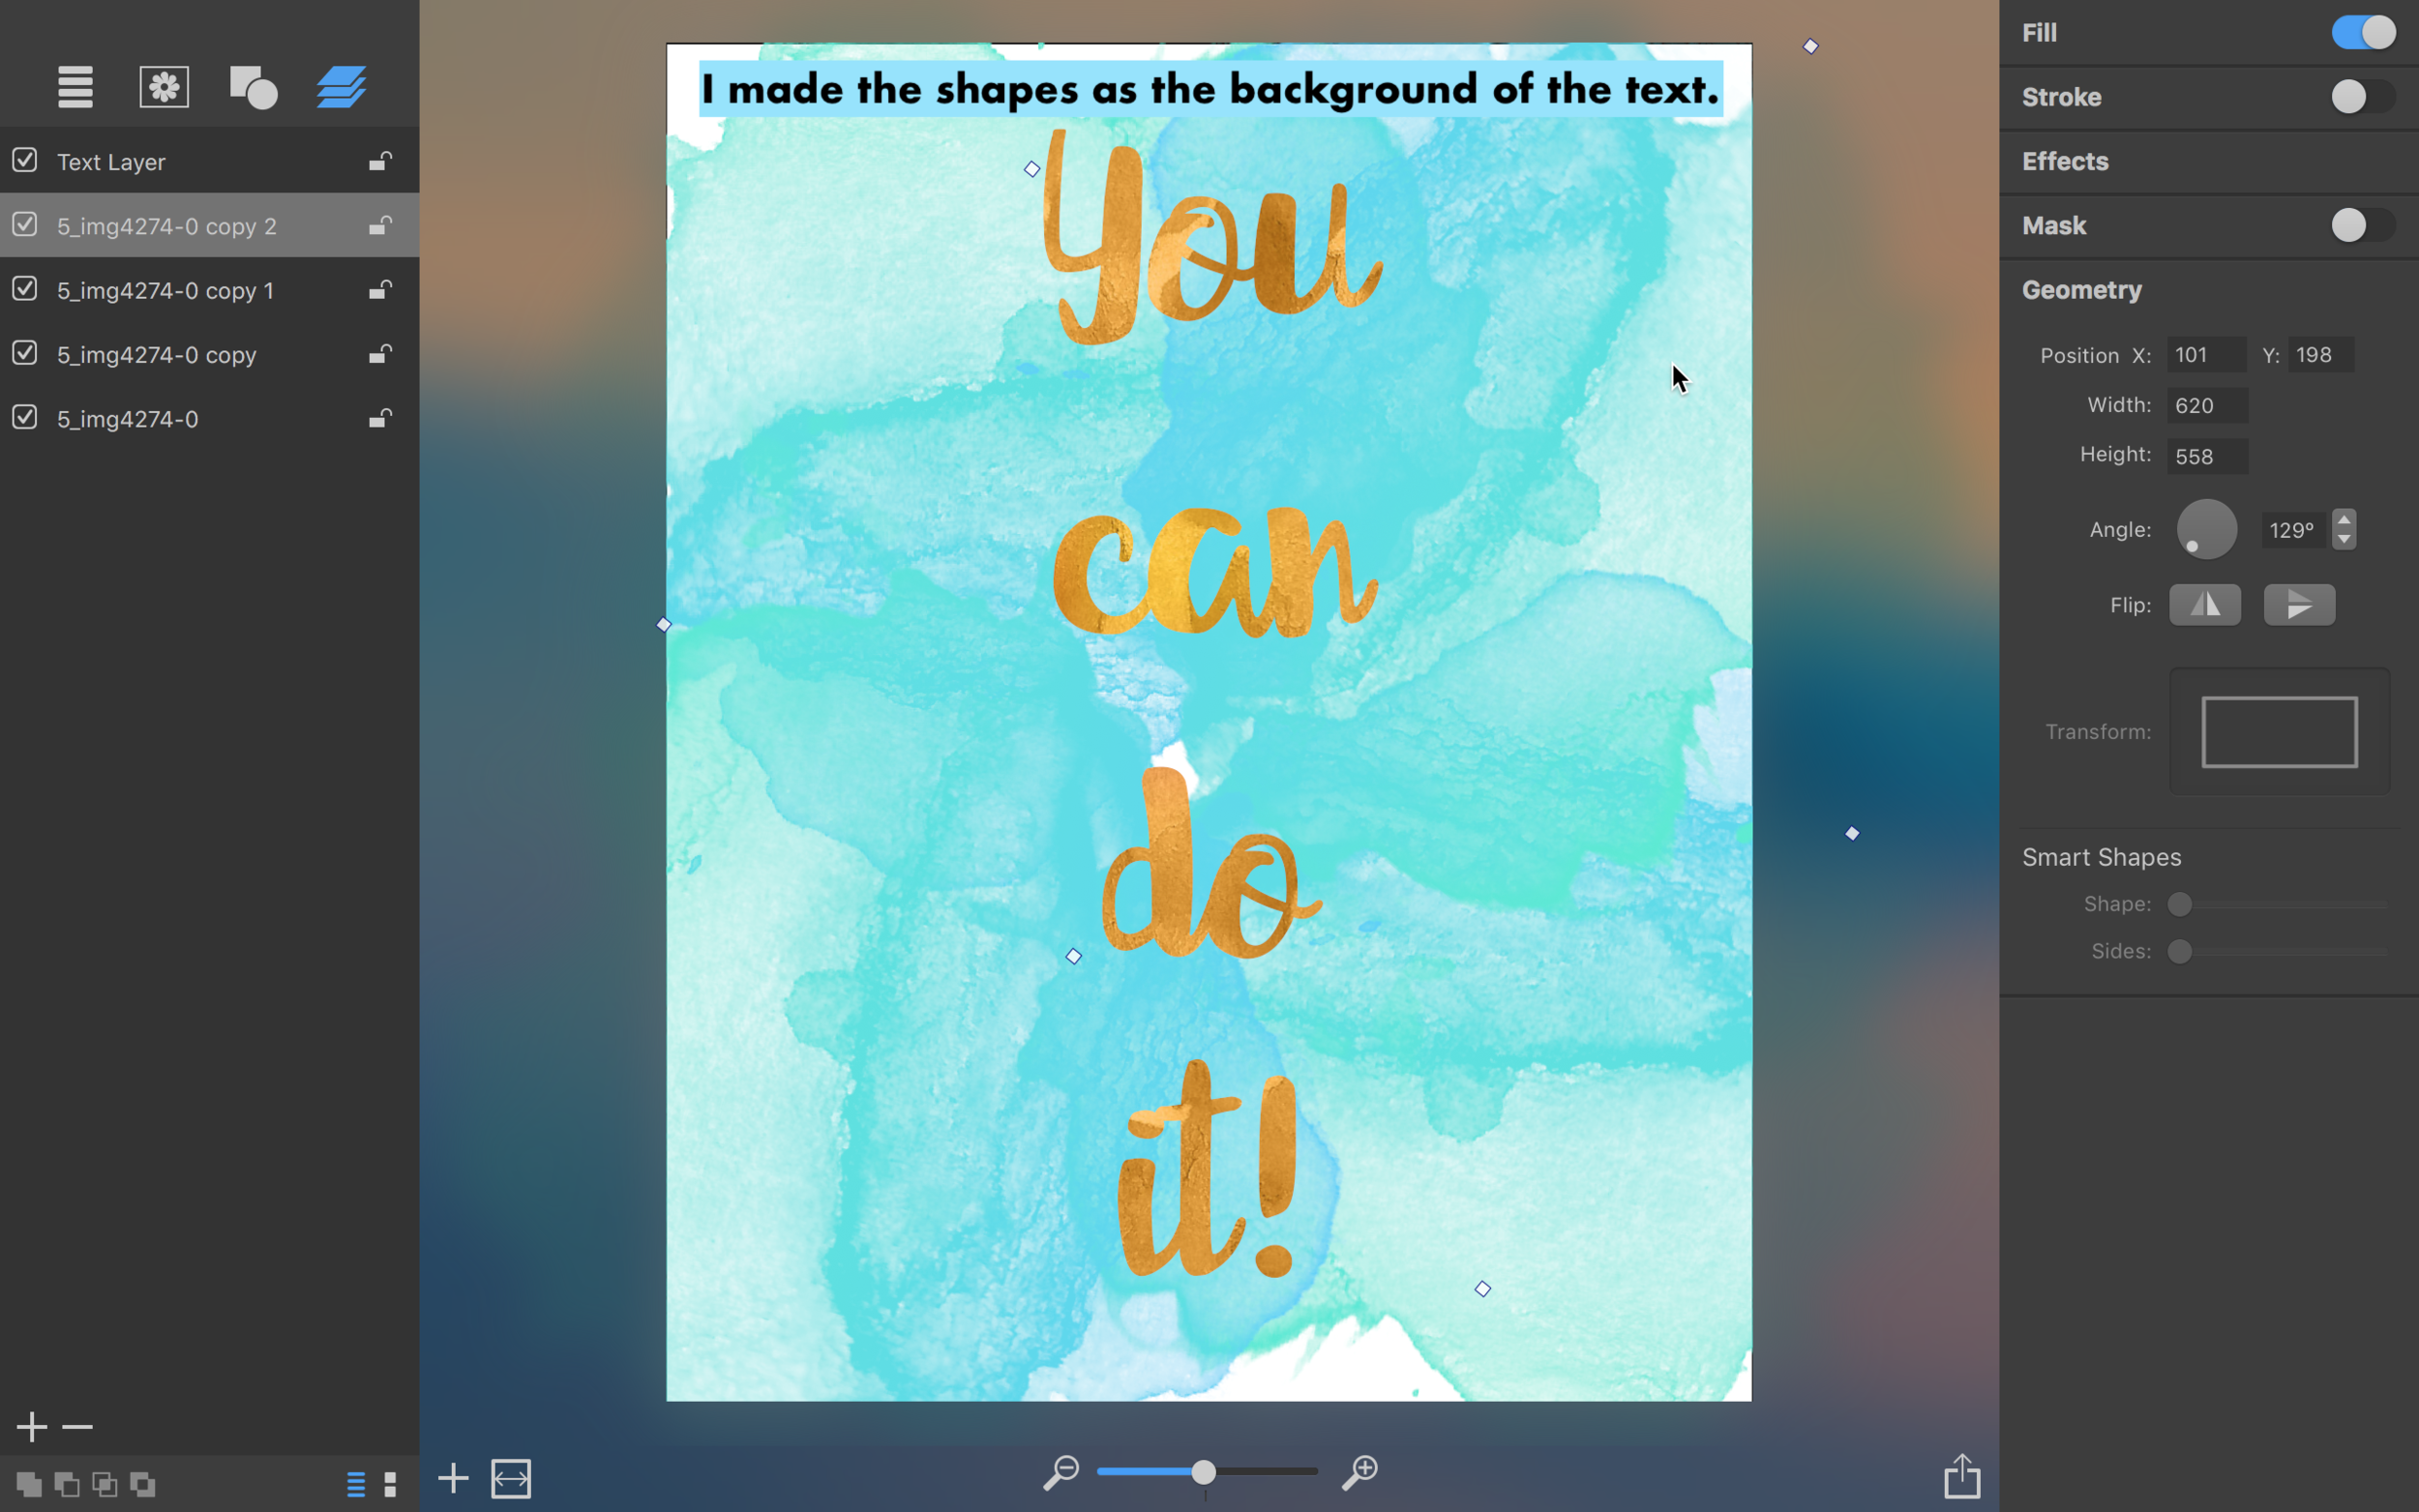 art-text-app-16th-step.png